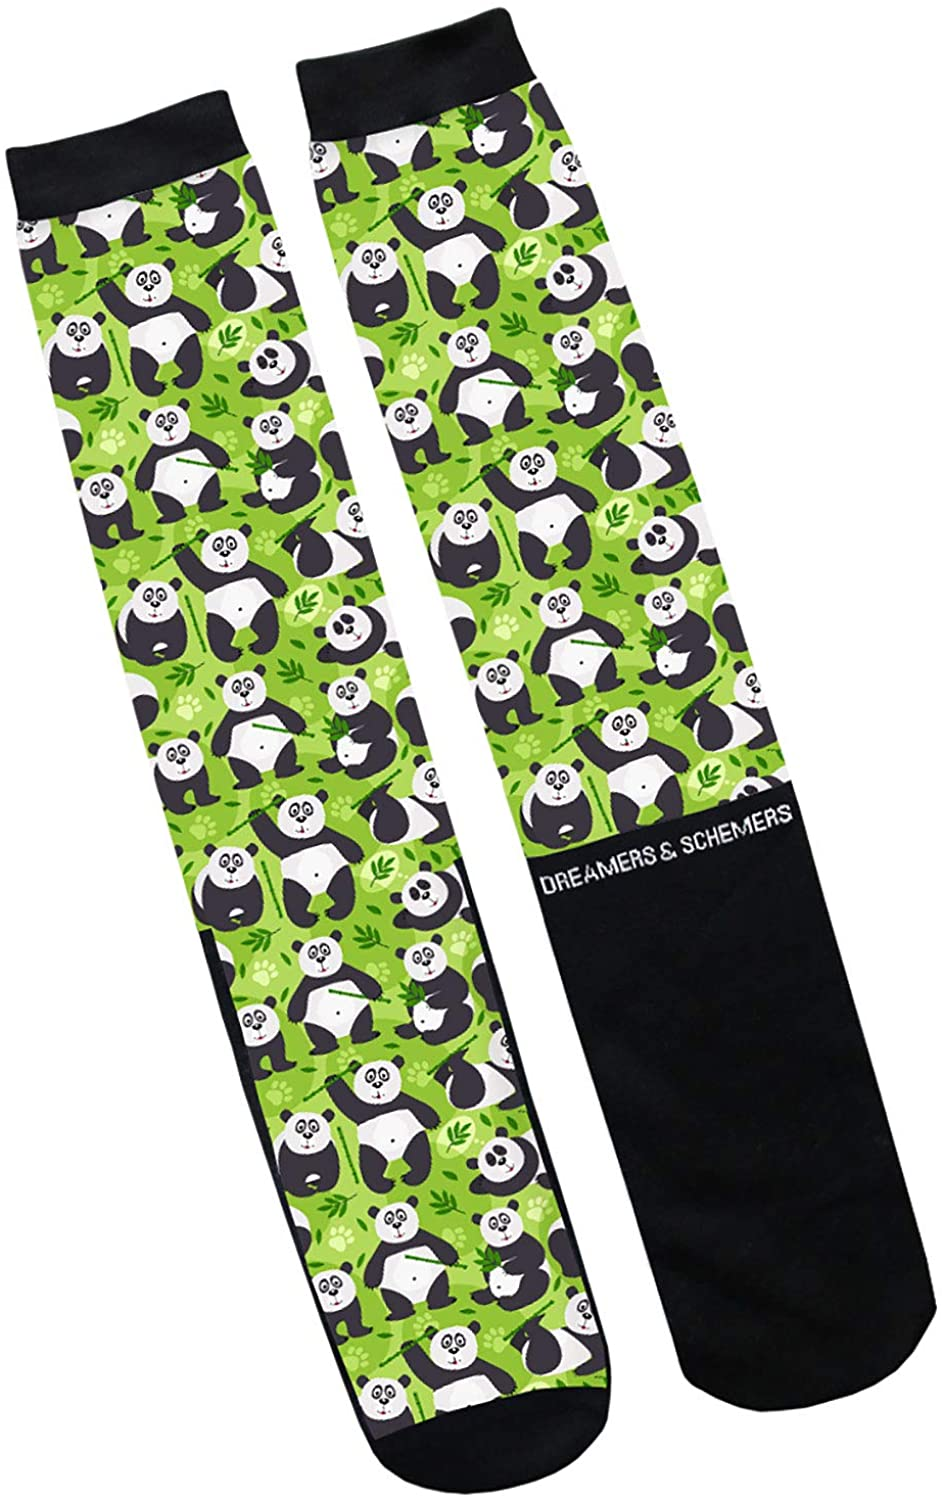 Dreamers & Schemers Powered By Pandas Riding Socks